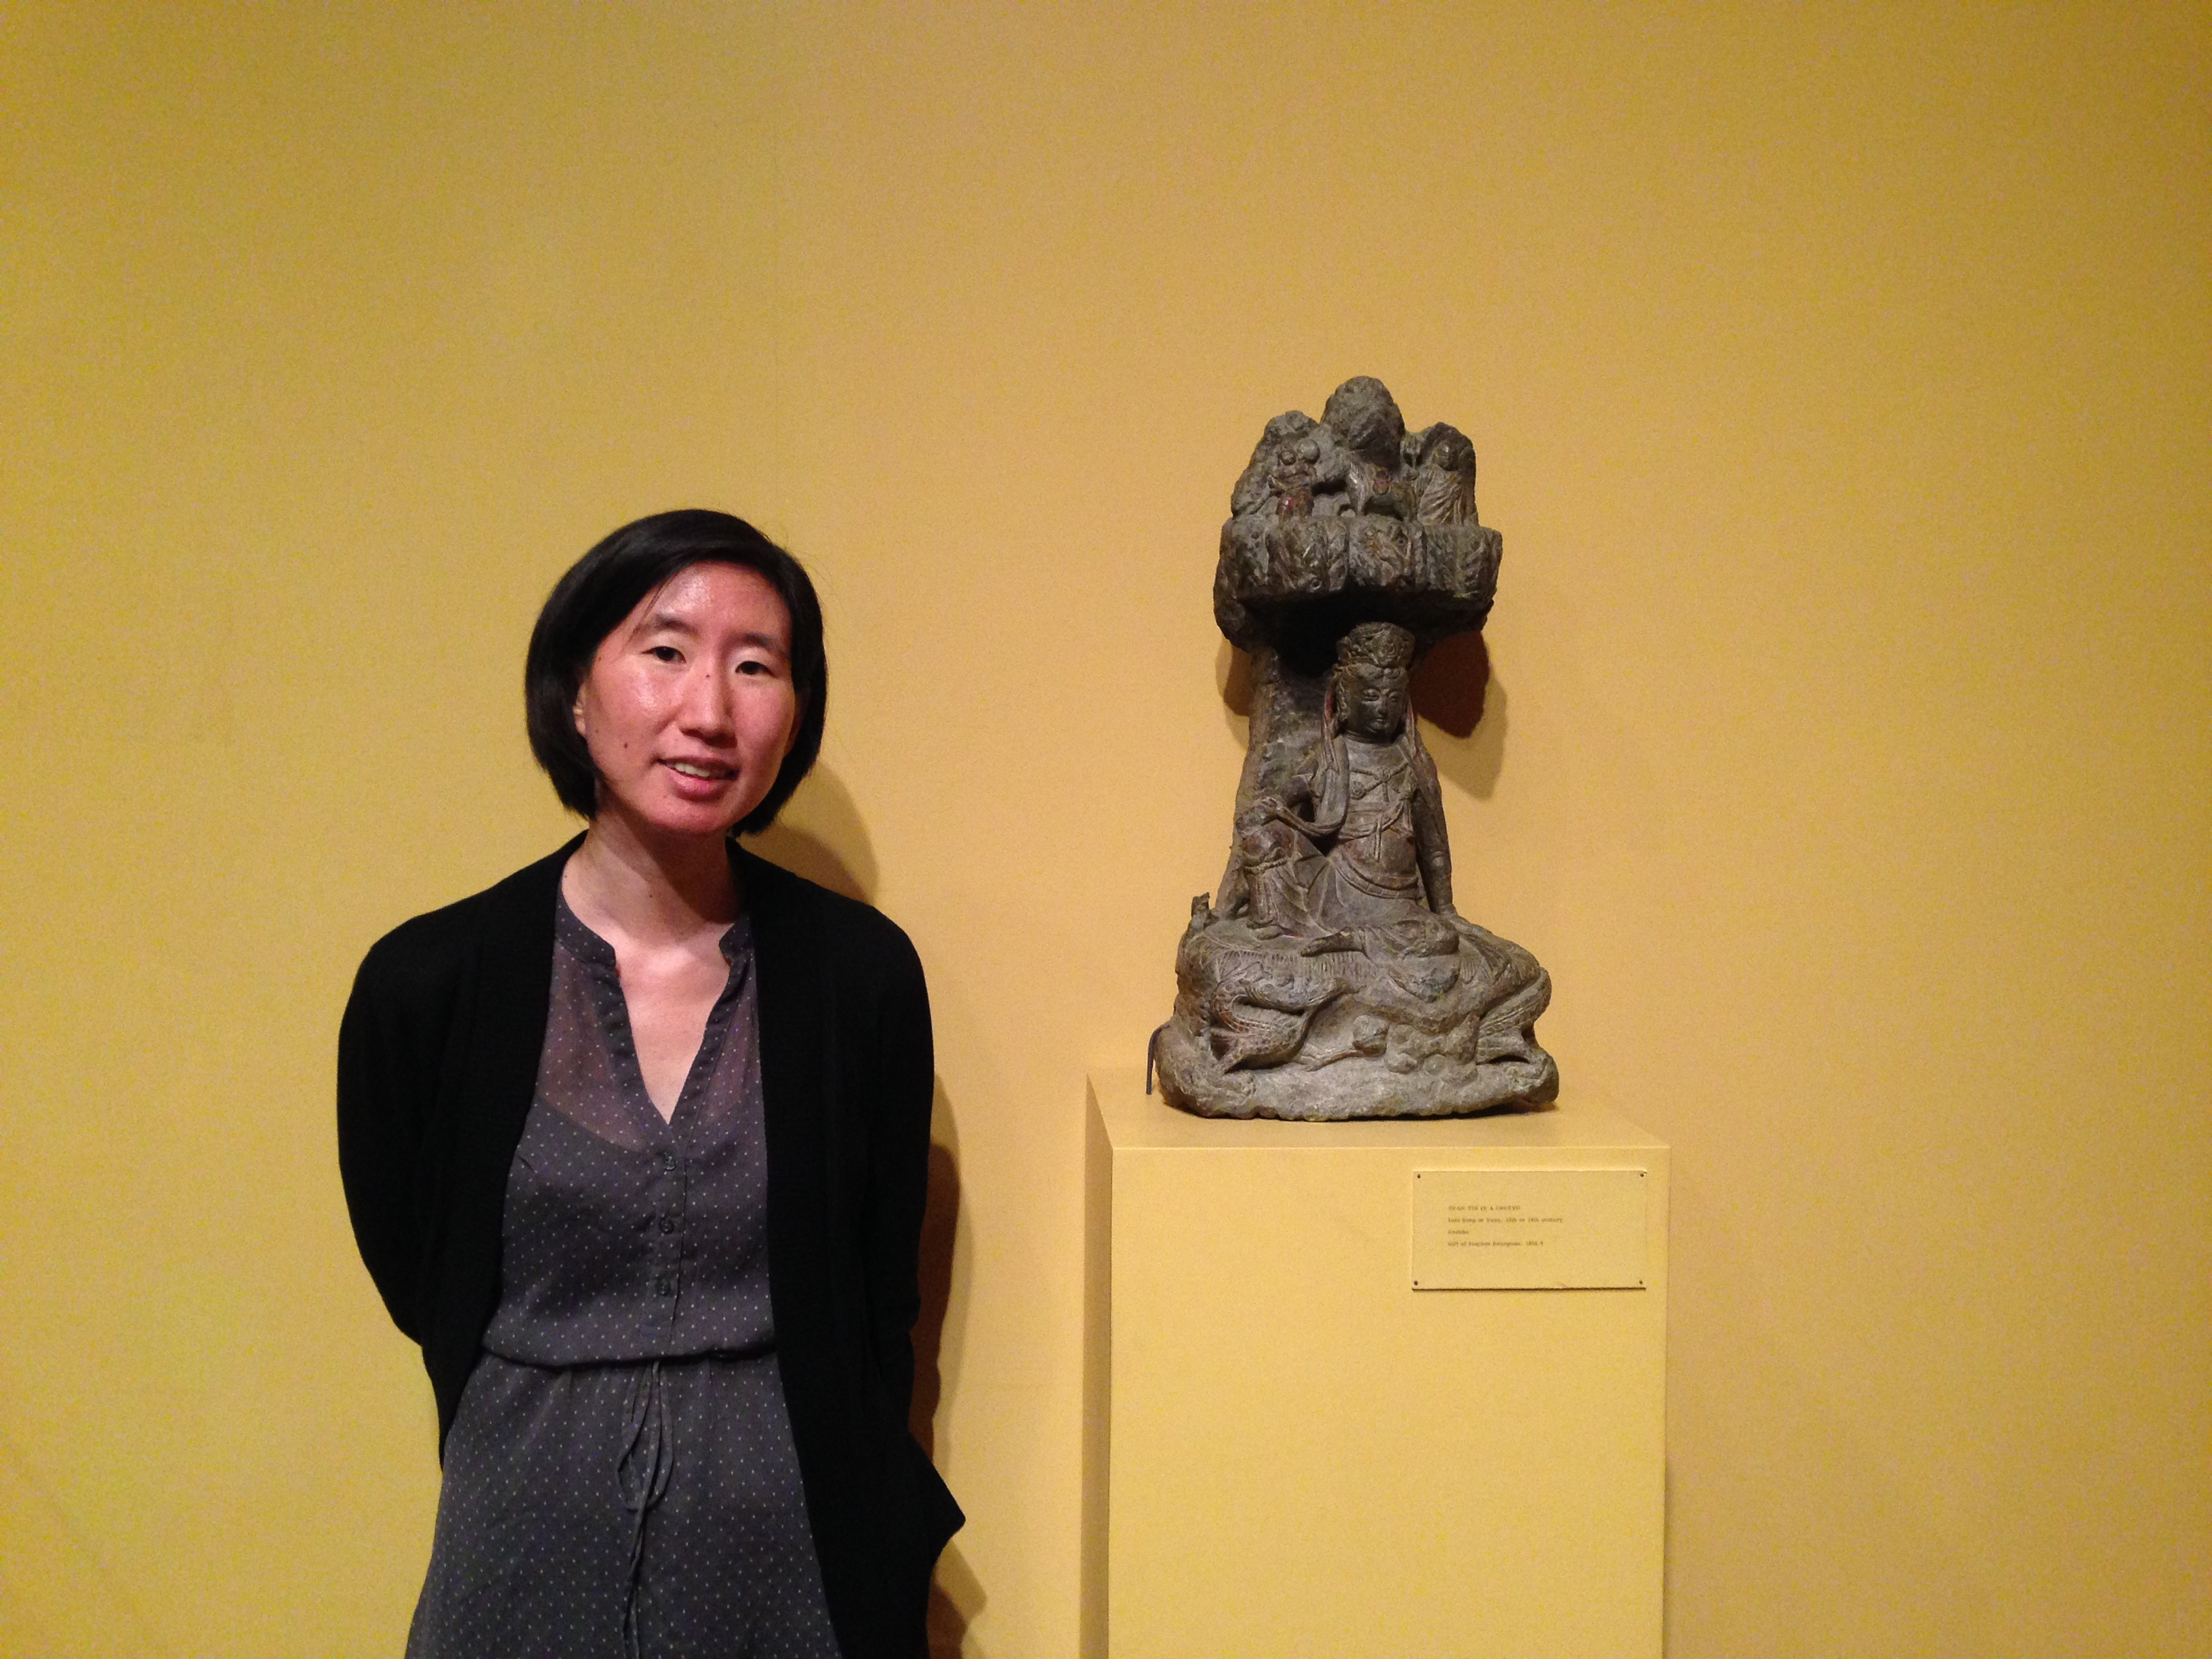 WAM Assistant Curator of Asian Art Vivian Li with Guanyin Seated in a Grotto.